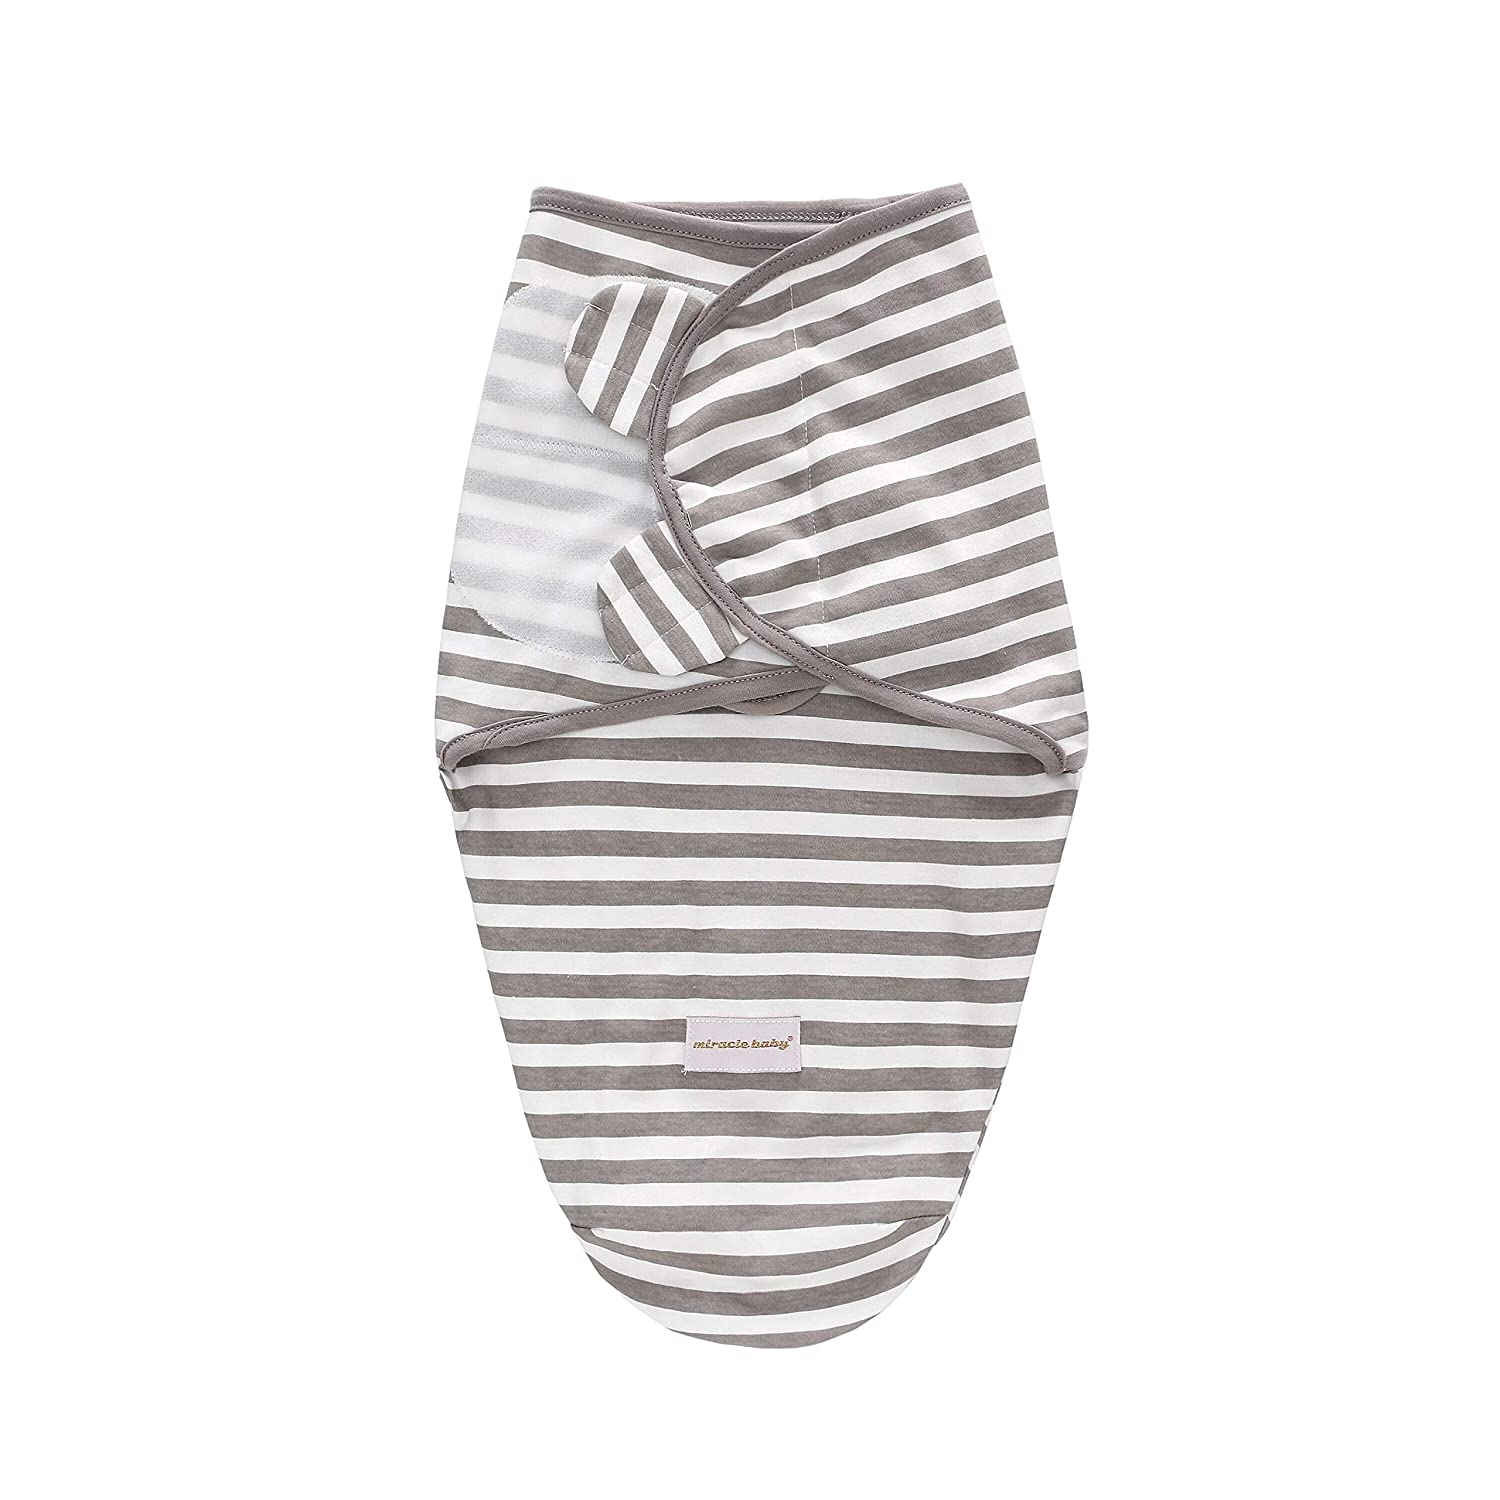 Weich und verstellbar 100/% Baumwolle Infant Swaddle Wrap Decke f/ür Unisex Babys 0-6 Monate Klein:0-3 Monate,Dinosaurier - Swaddle Up Wraps Schlafsack Newborn Baby Wrap Cloth